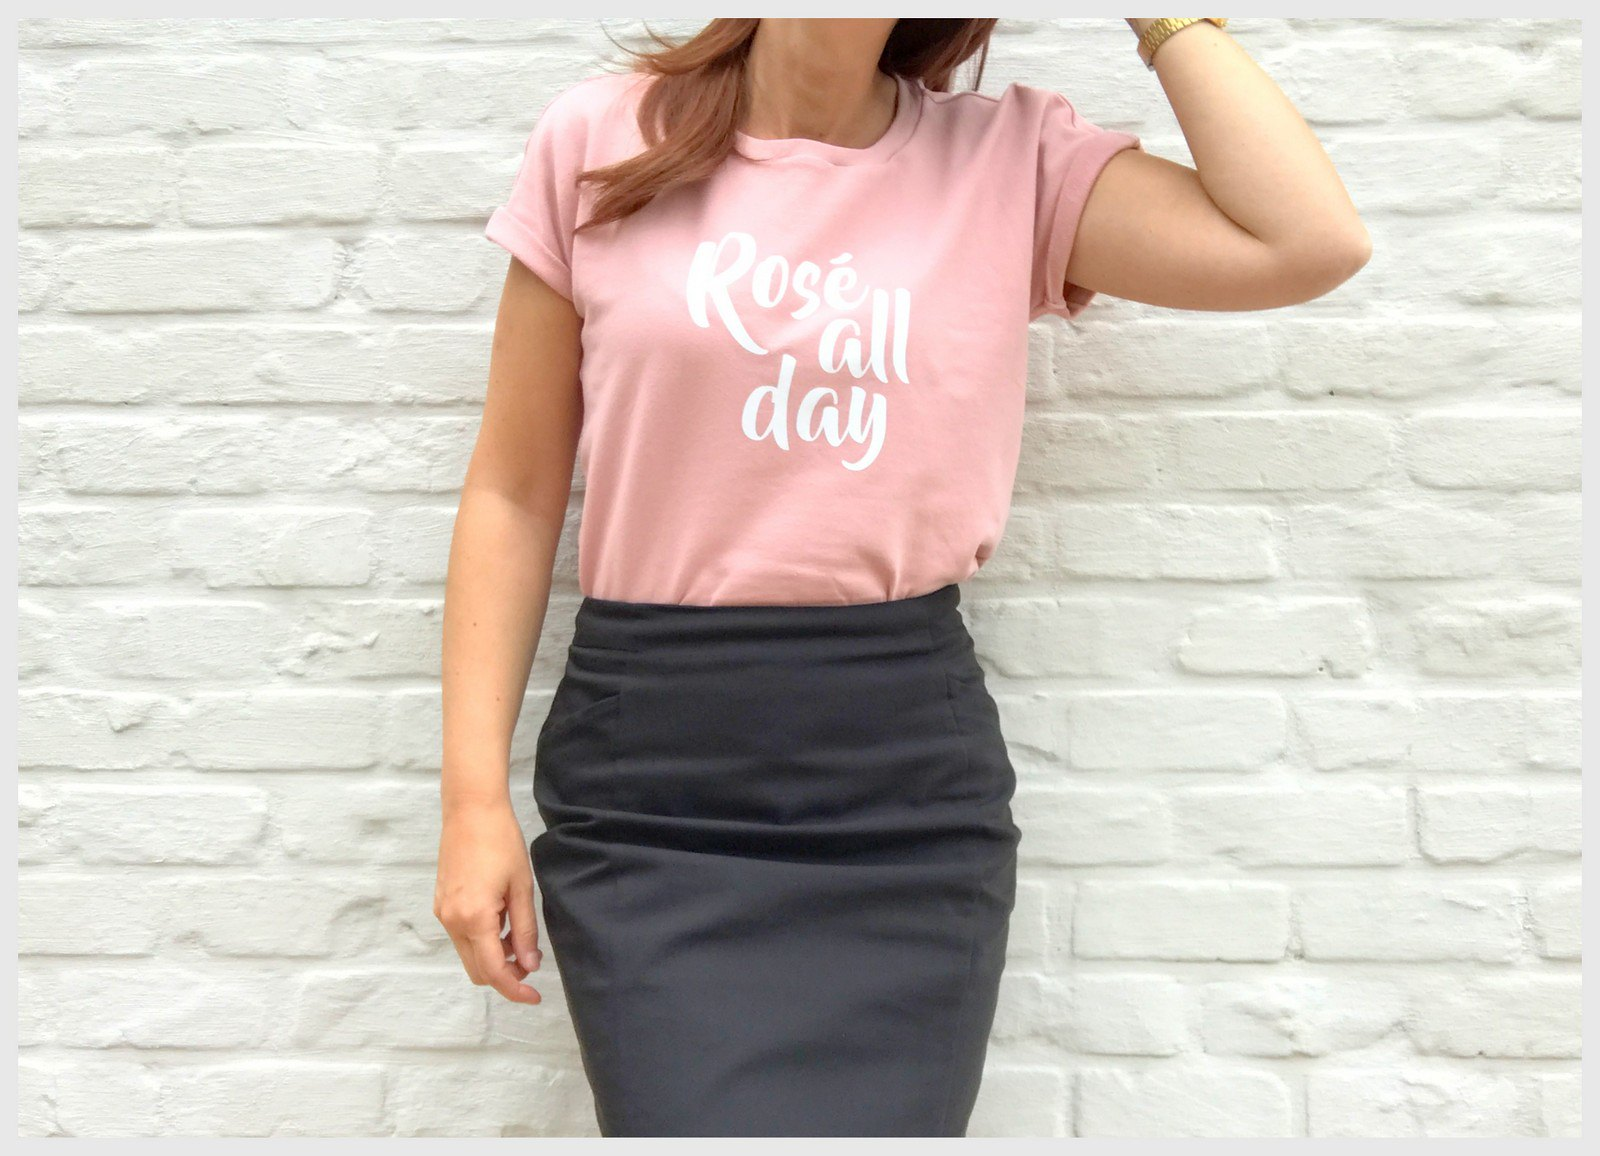 rosé all day shirt 2